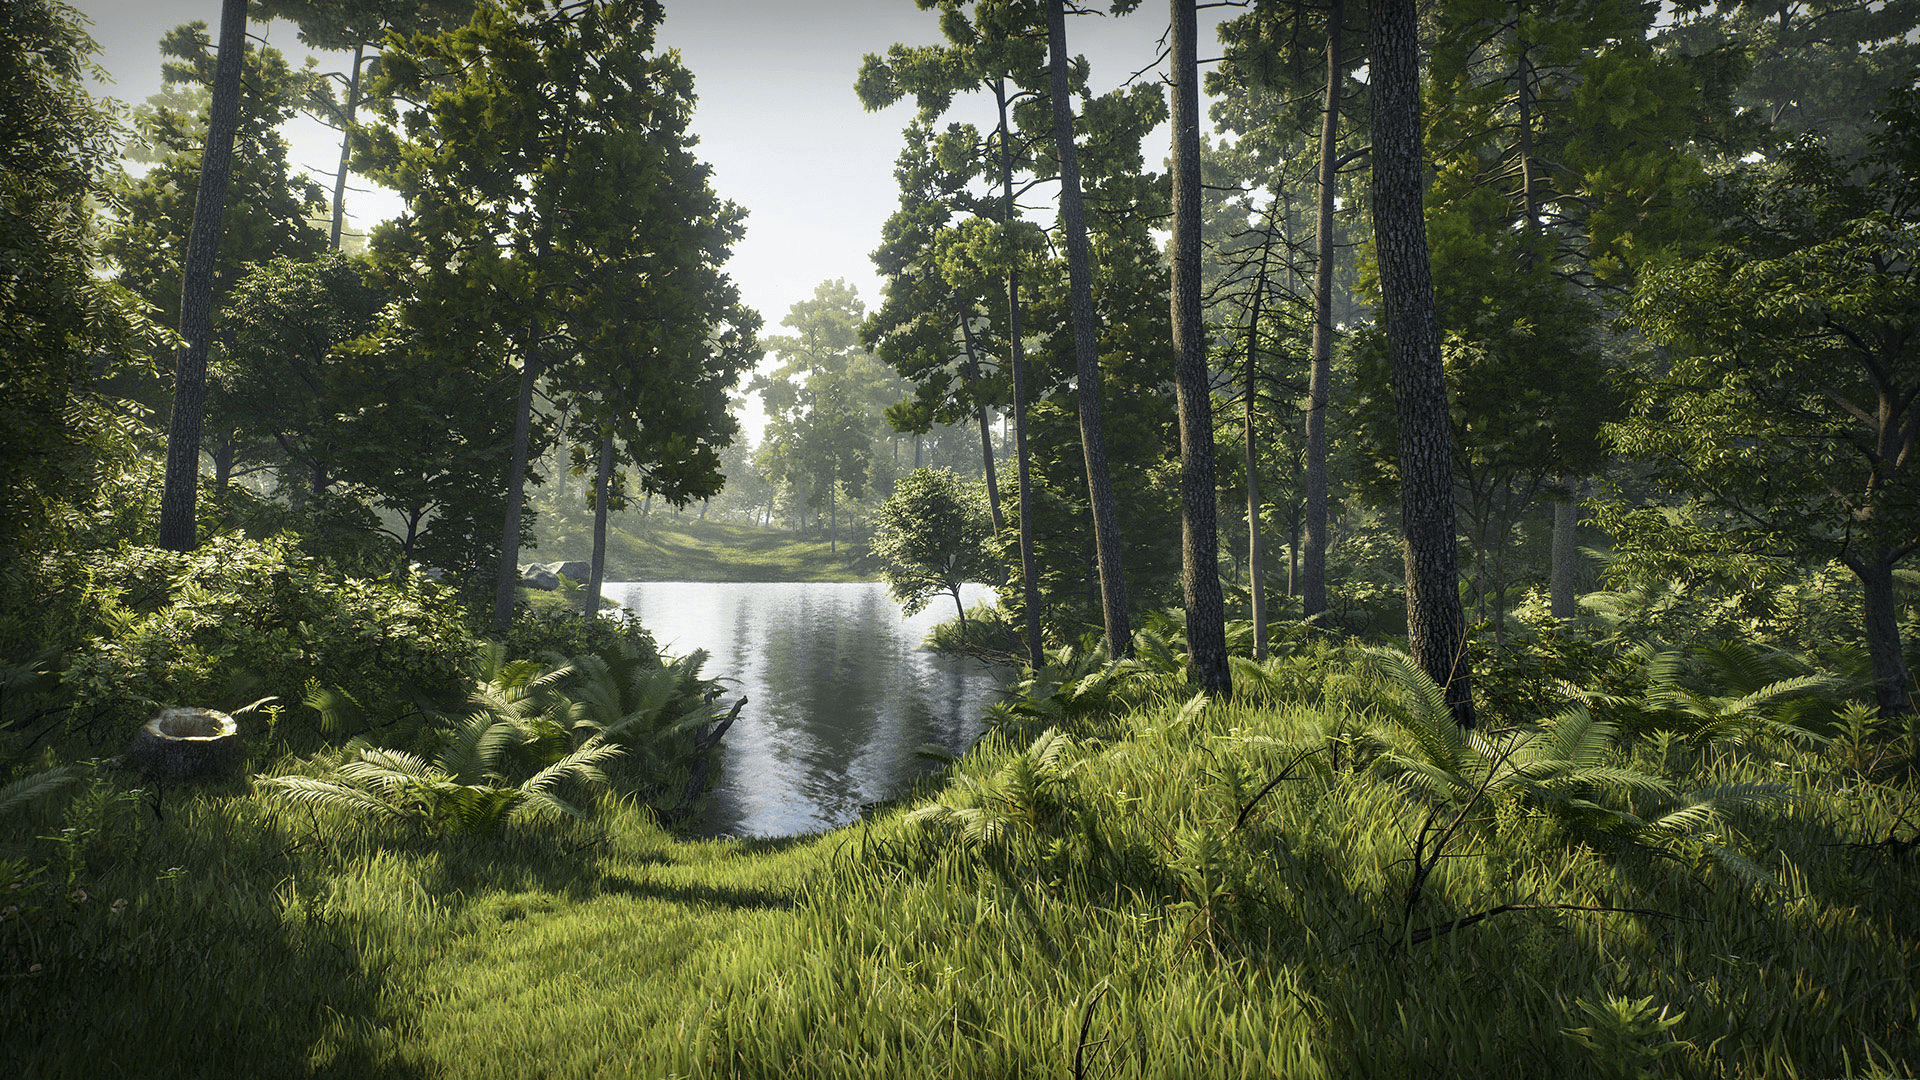 AM_UE4_vol4_Screenshot_01-1920x1080-46c2